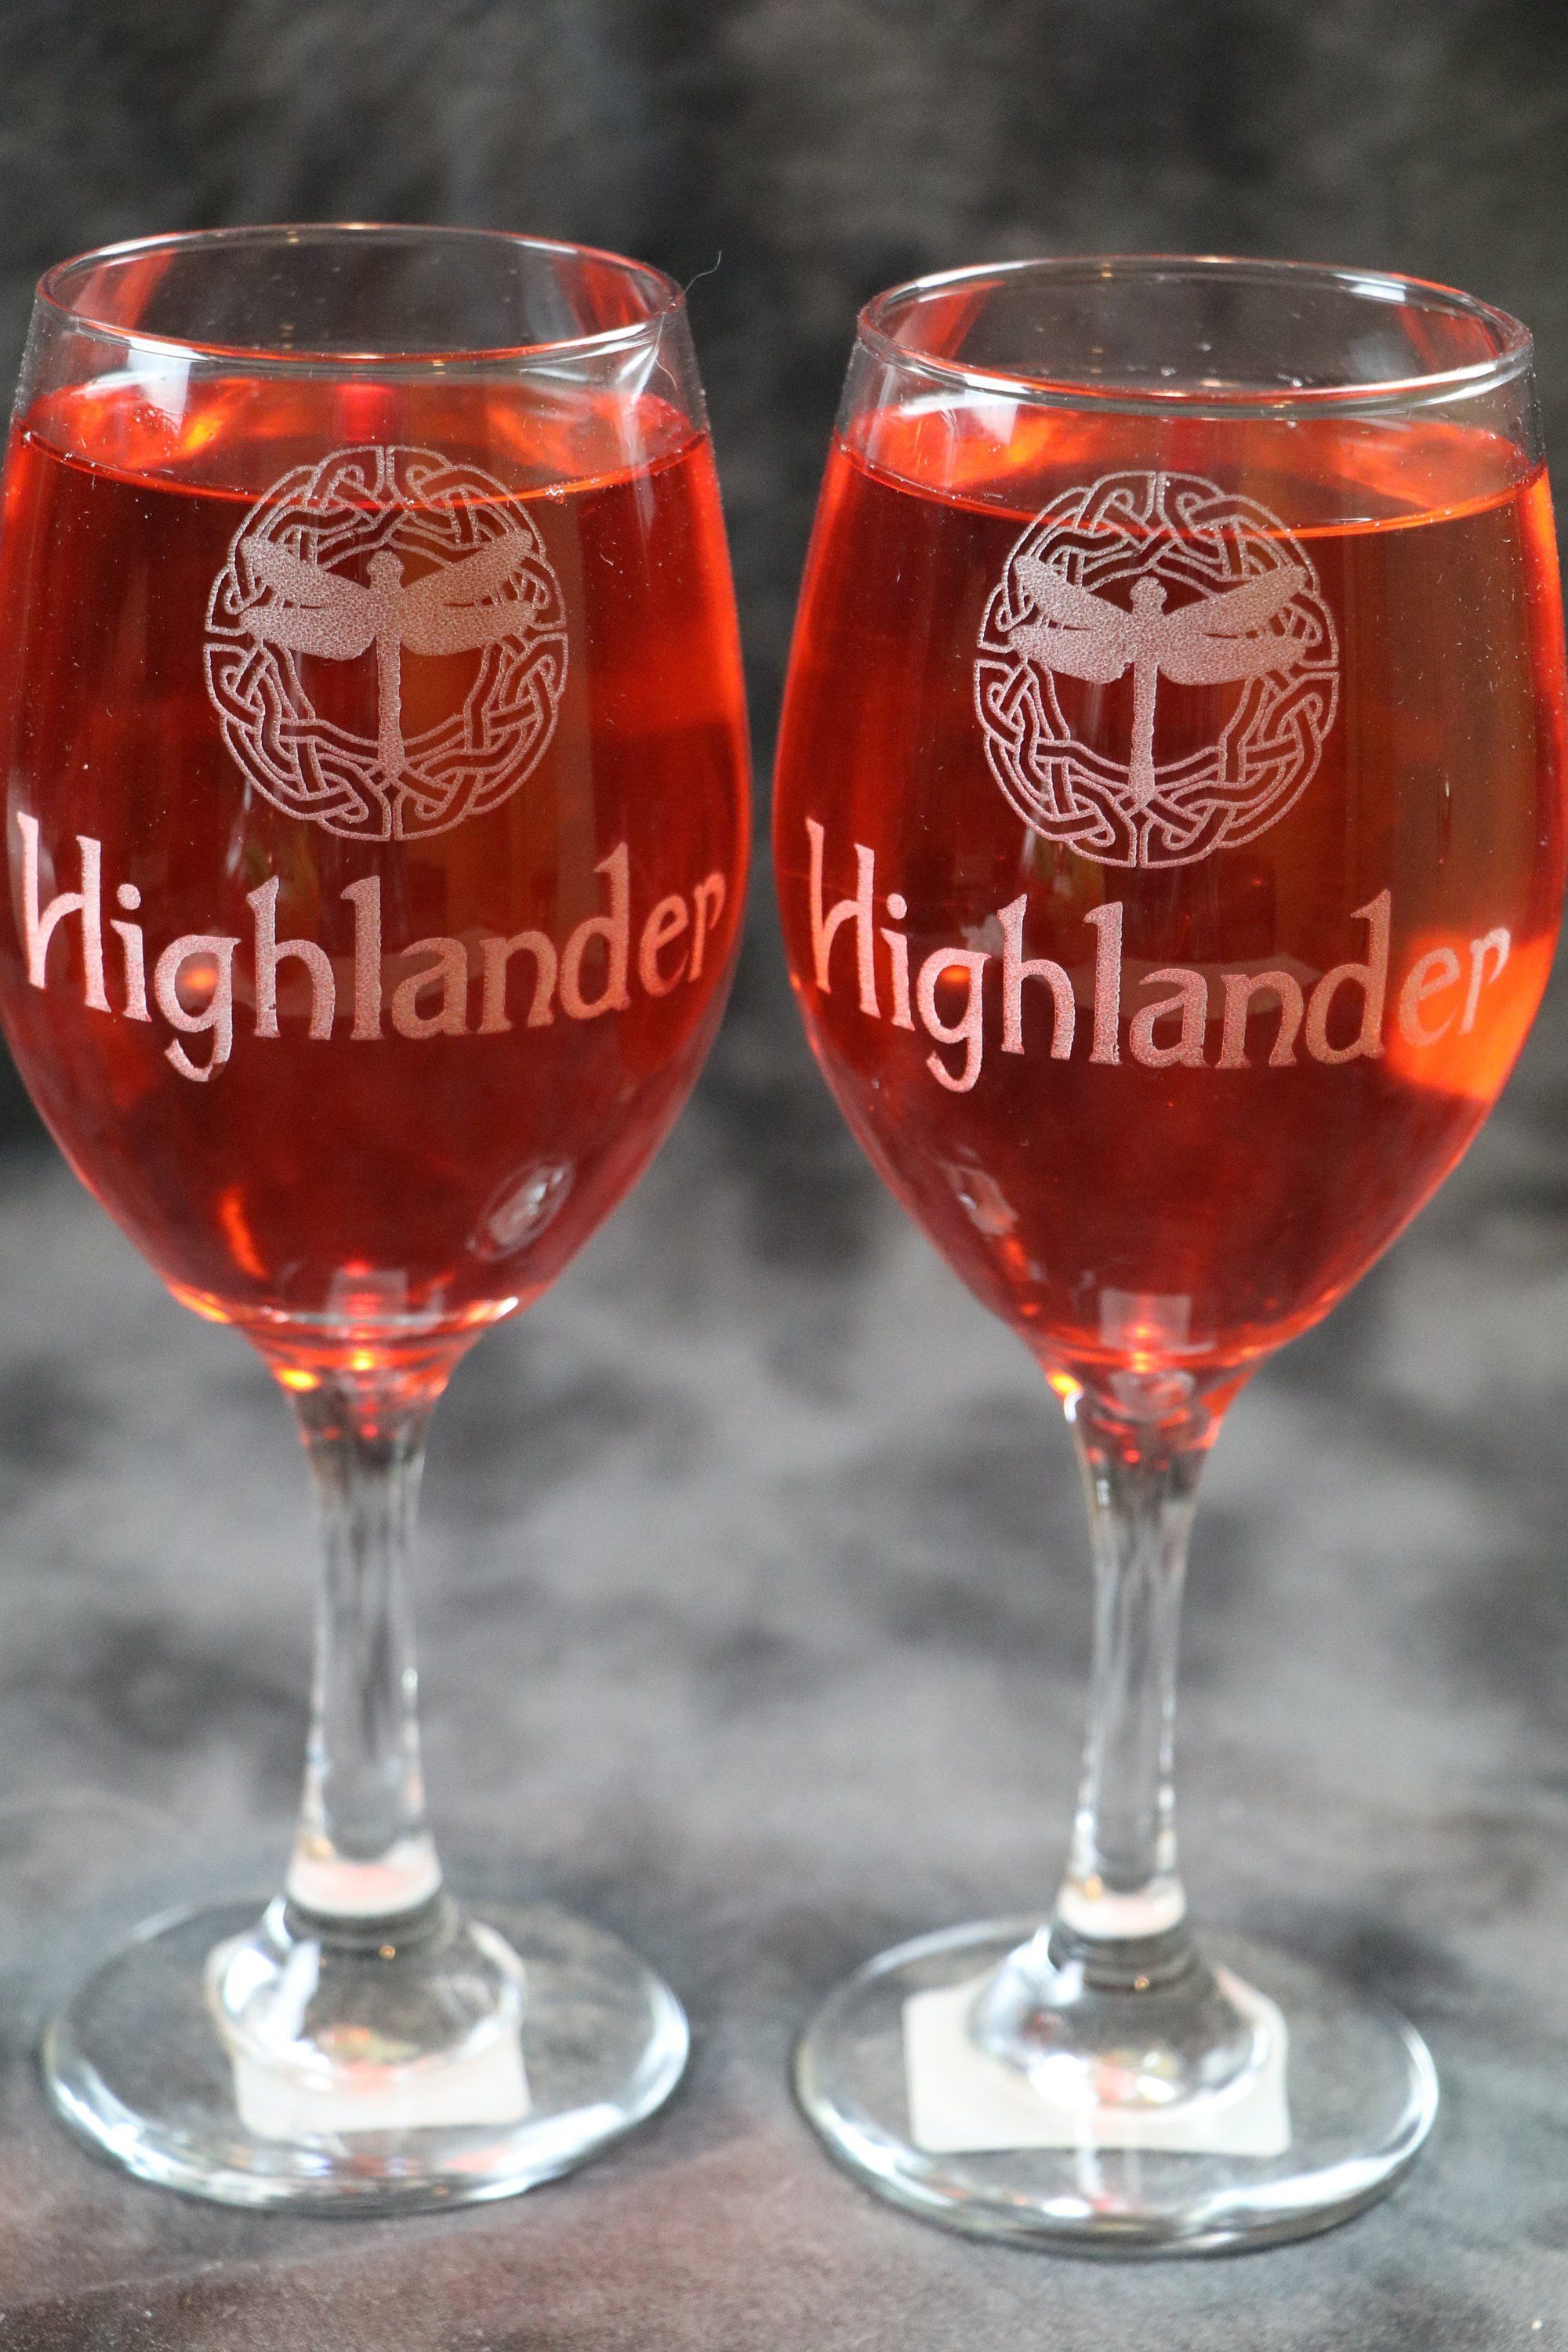 Highlander Dragonfly Celtic Circle Outlander Inspired Frosted Or Etched White Wine Glasses Set Of 2 By De White Wine Glasses Celtic Circle Unique Wine Glasses